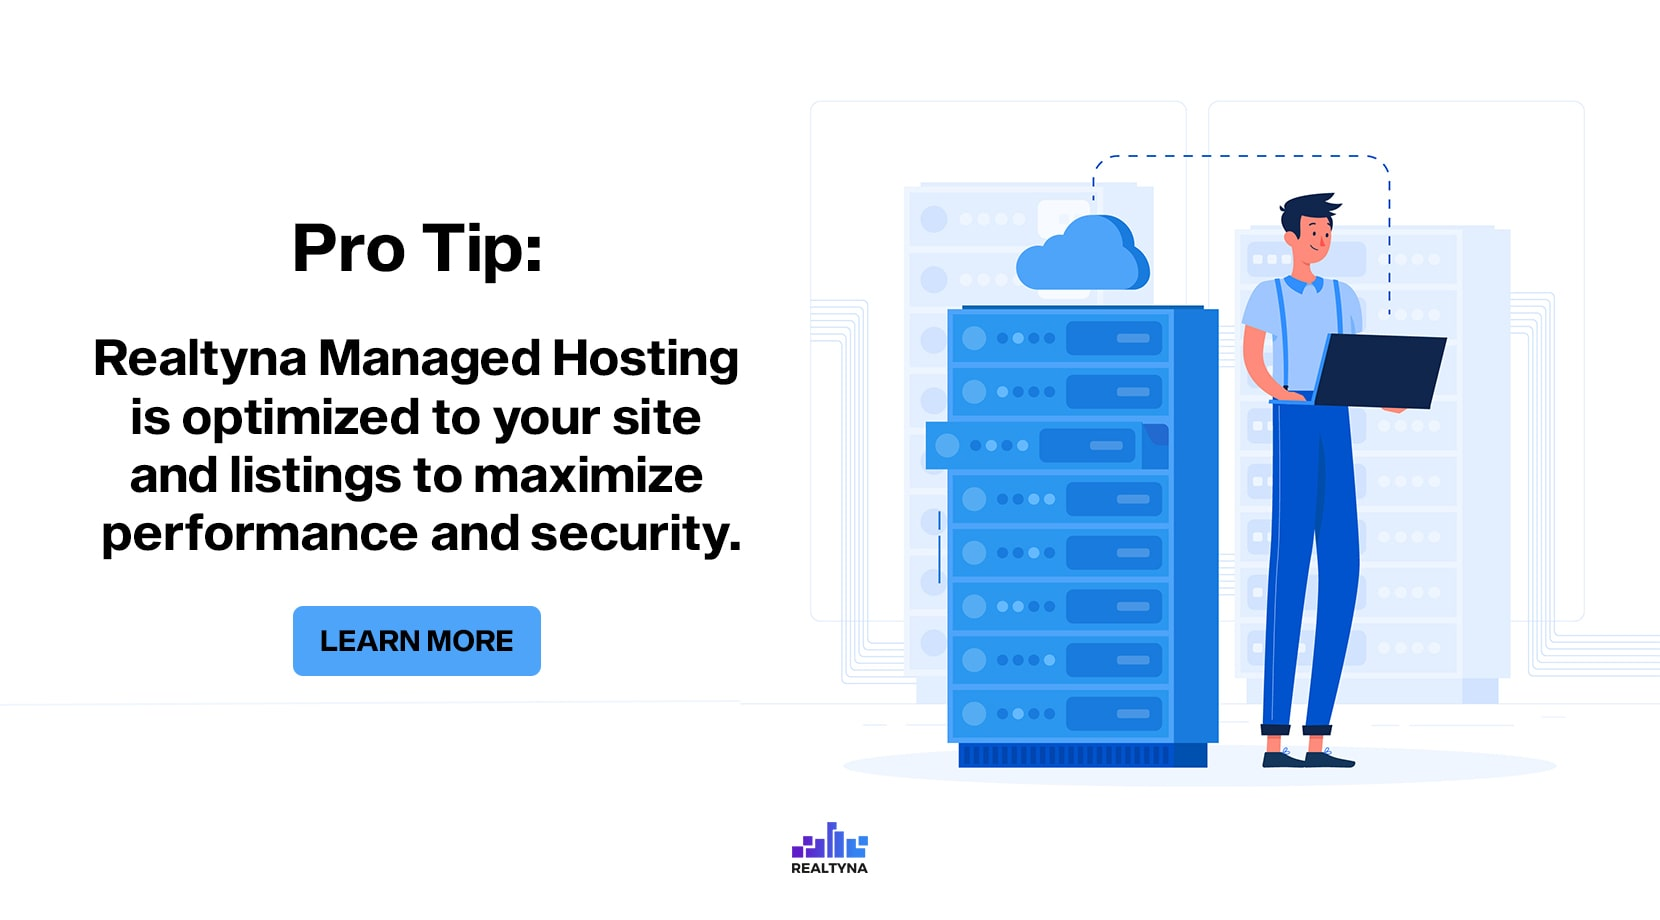 Realtyna's Managed Hosting